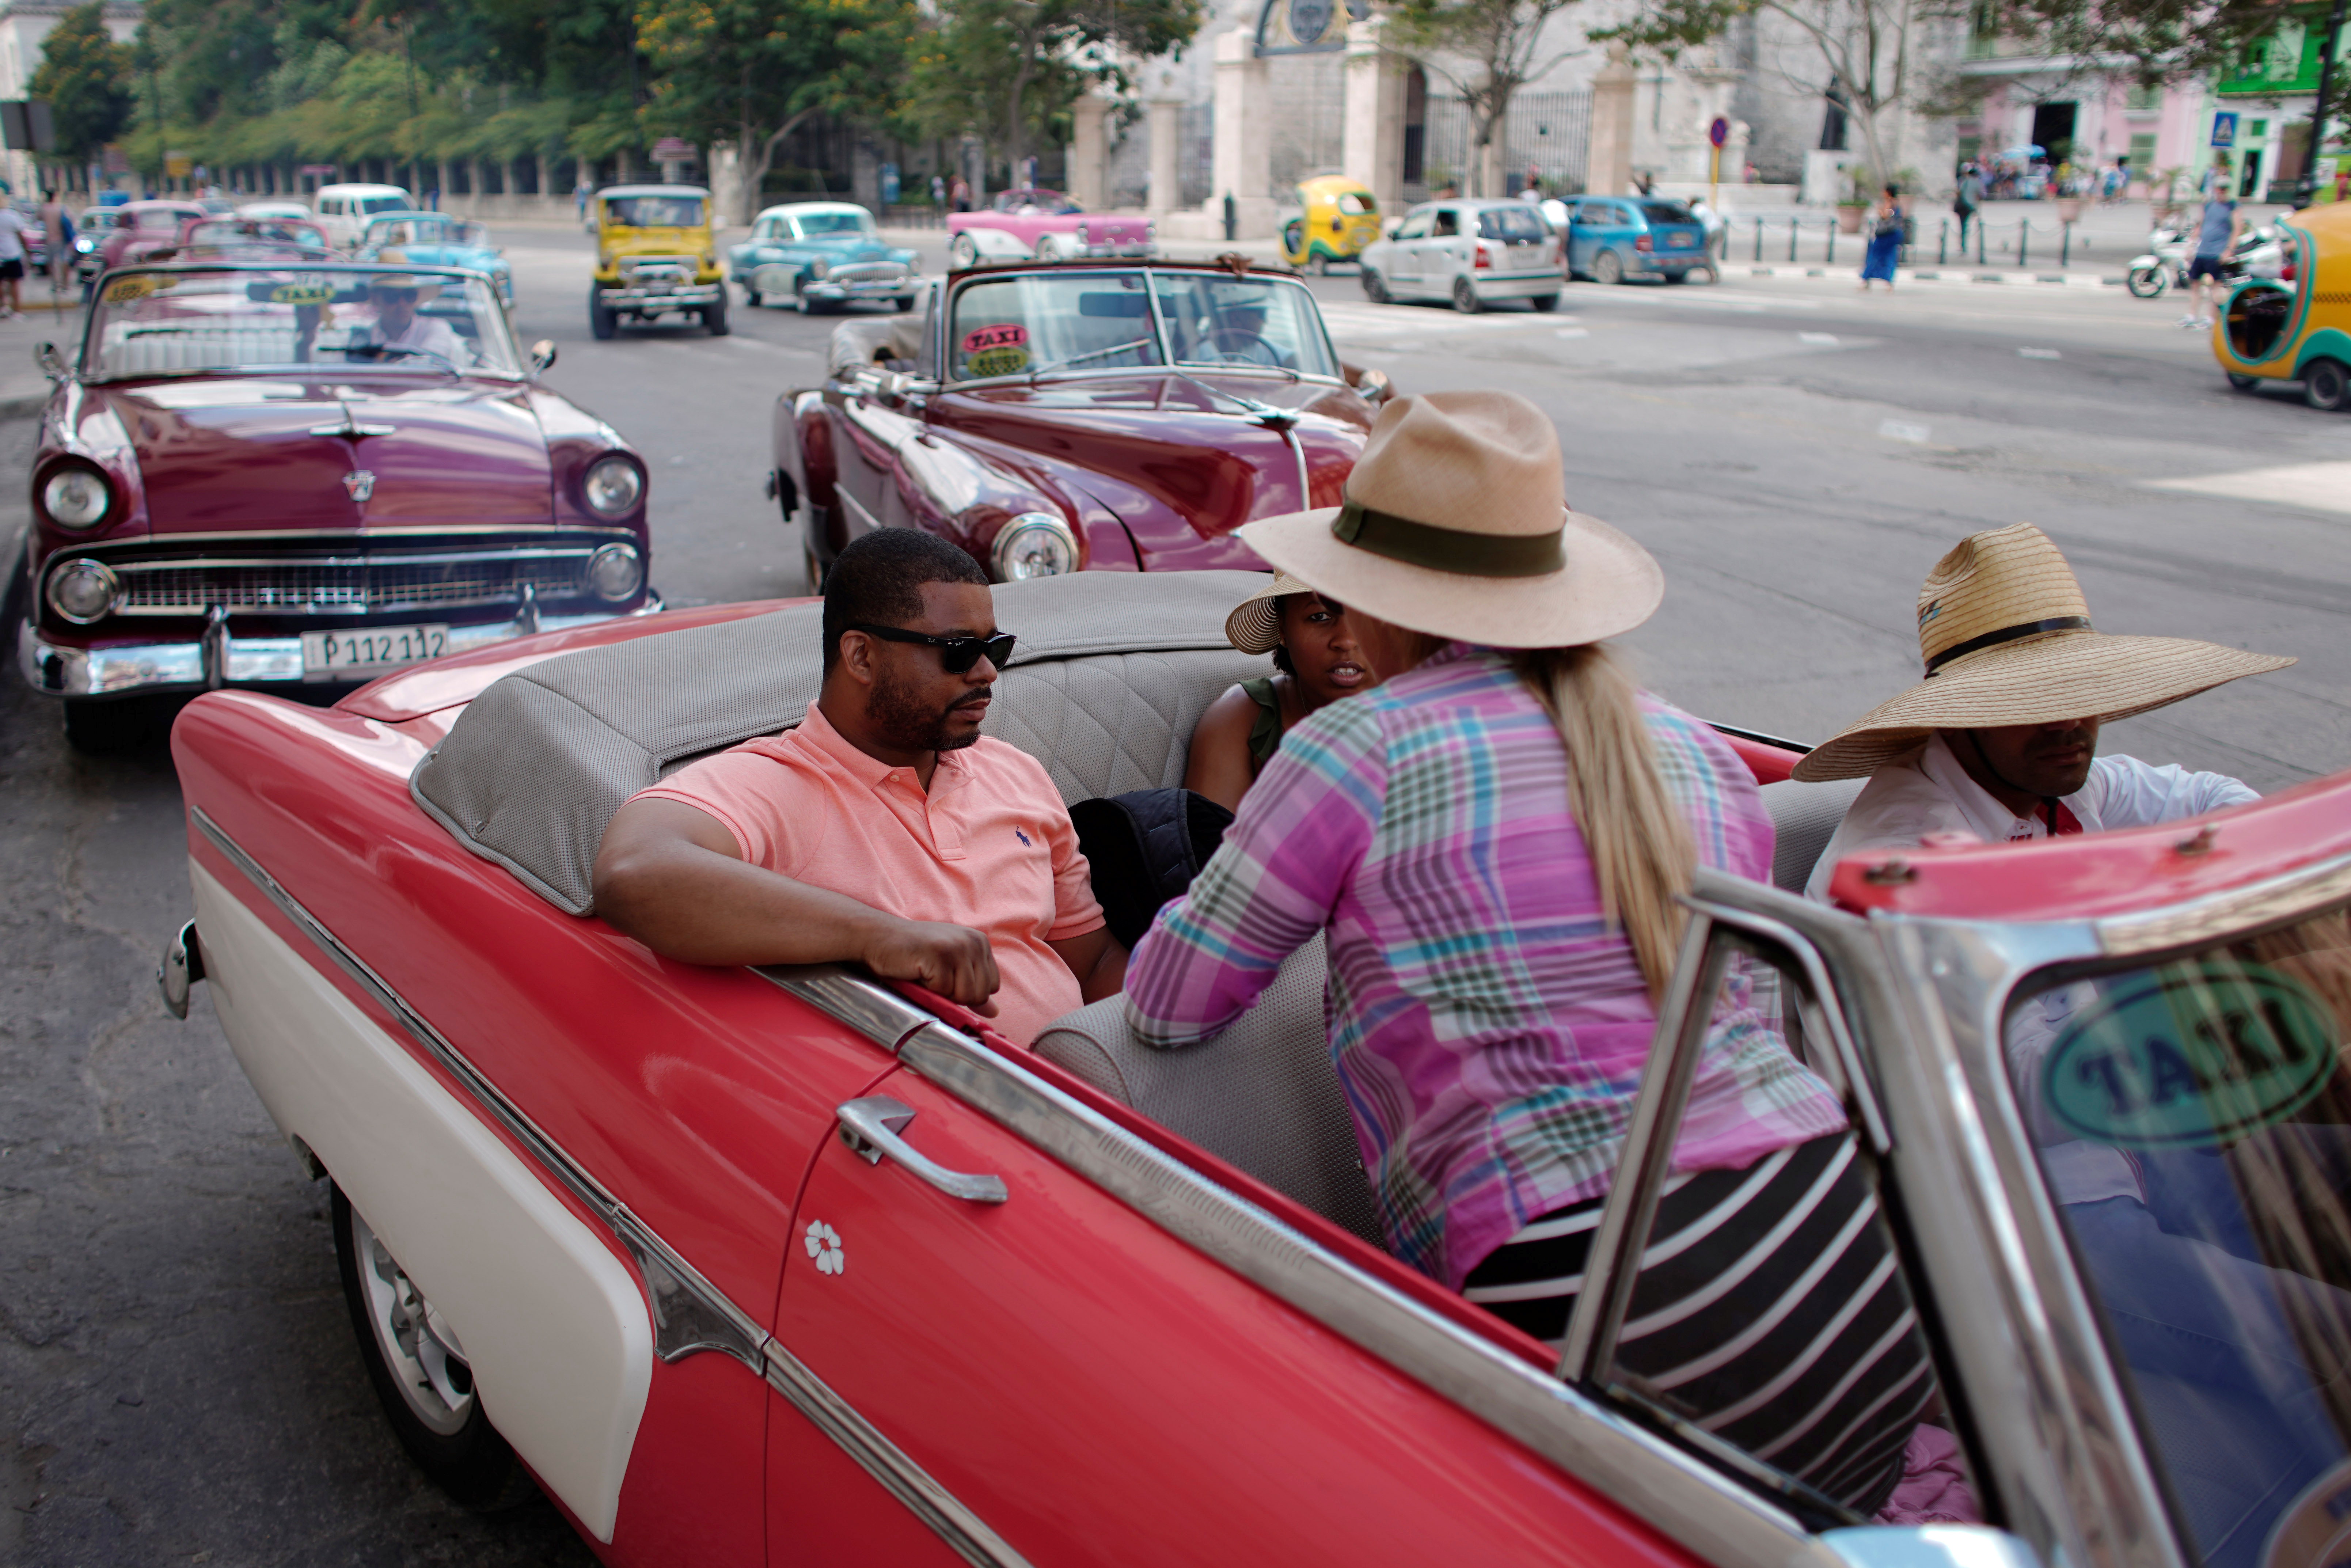 U.S. cruise ship tourists Aloyosius Howard and Kenyatta Puckett talk to a tour guide as they prepare to ride in a vintage car in Havana, Cuba, June 5, 2019.